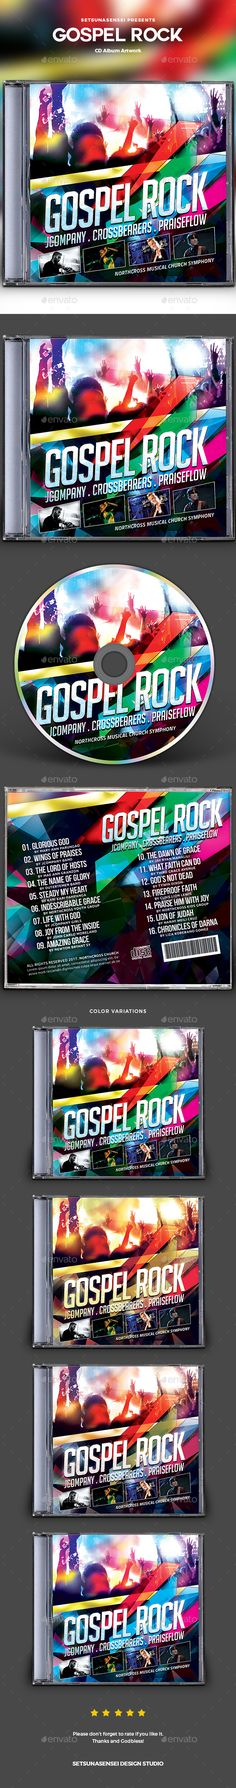 Gospel Rock CD Album Artwork - #CD & DVD Artwork Print Templates